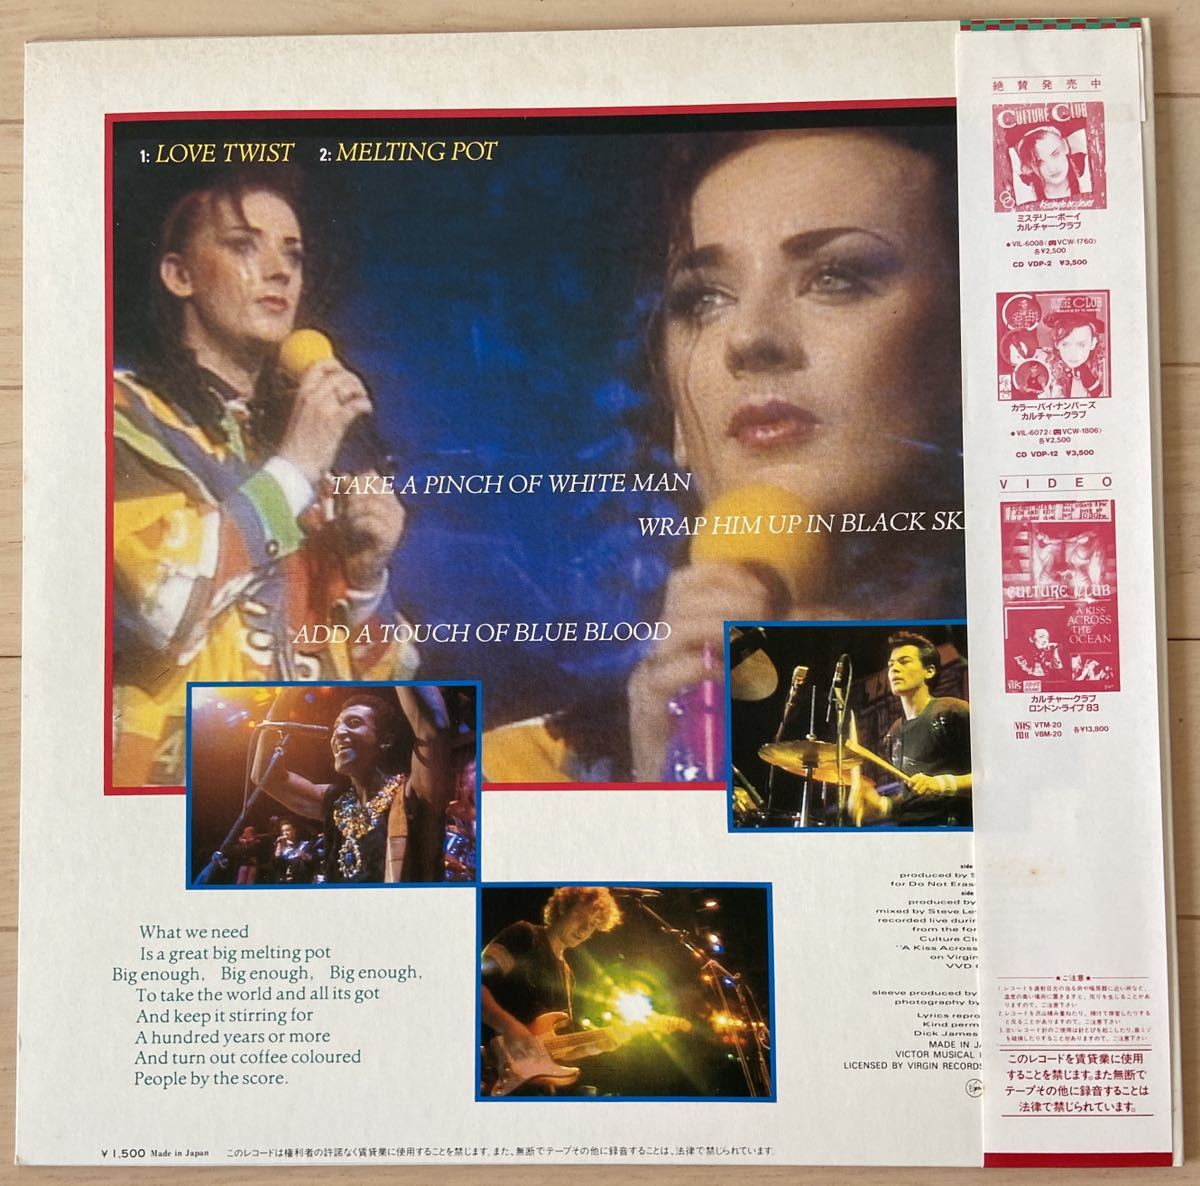 ITS A MIRACLE / MISS ME BLIND ミス ミー~イッツ ア ミラクル マルチミックス+ライブ 来日記念盤 CULTURE CLUB カルチャークラブ_画像2